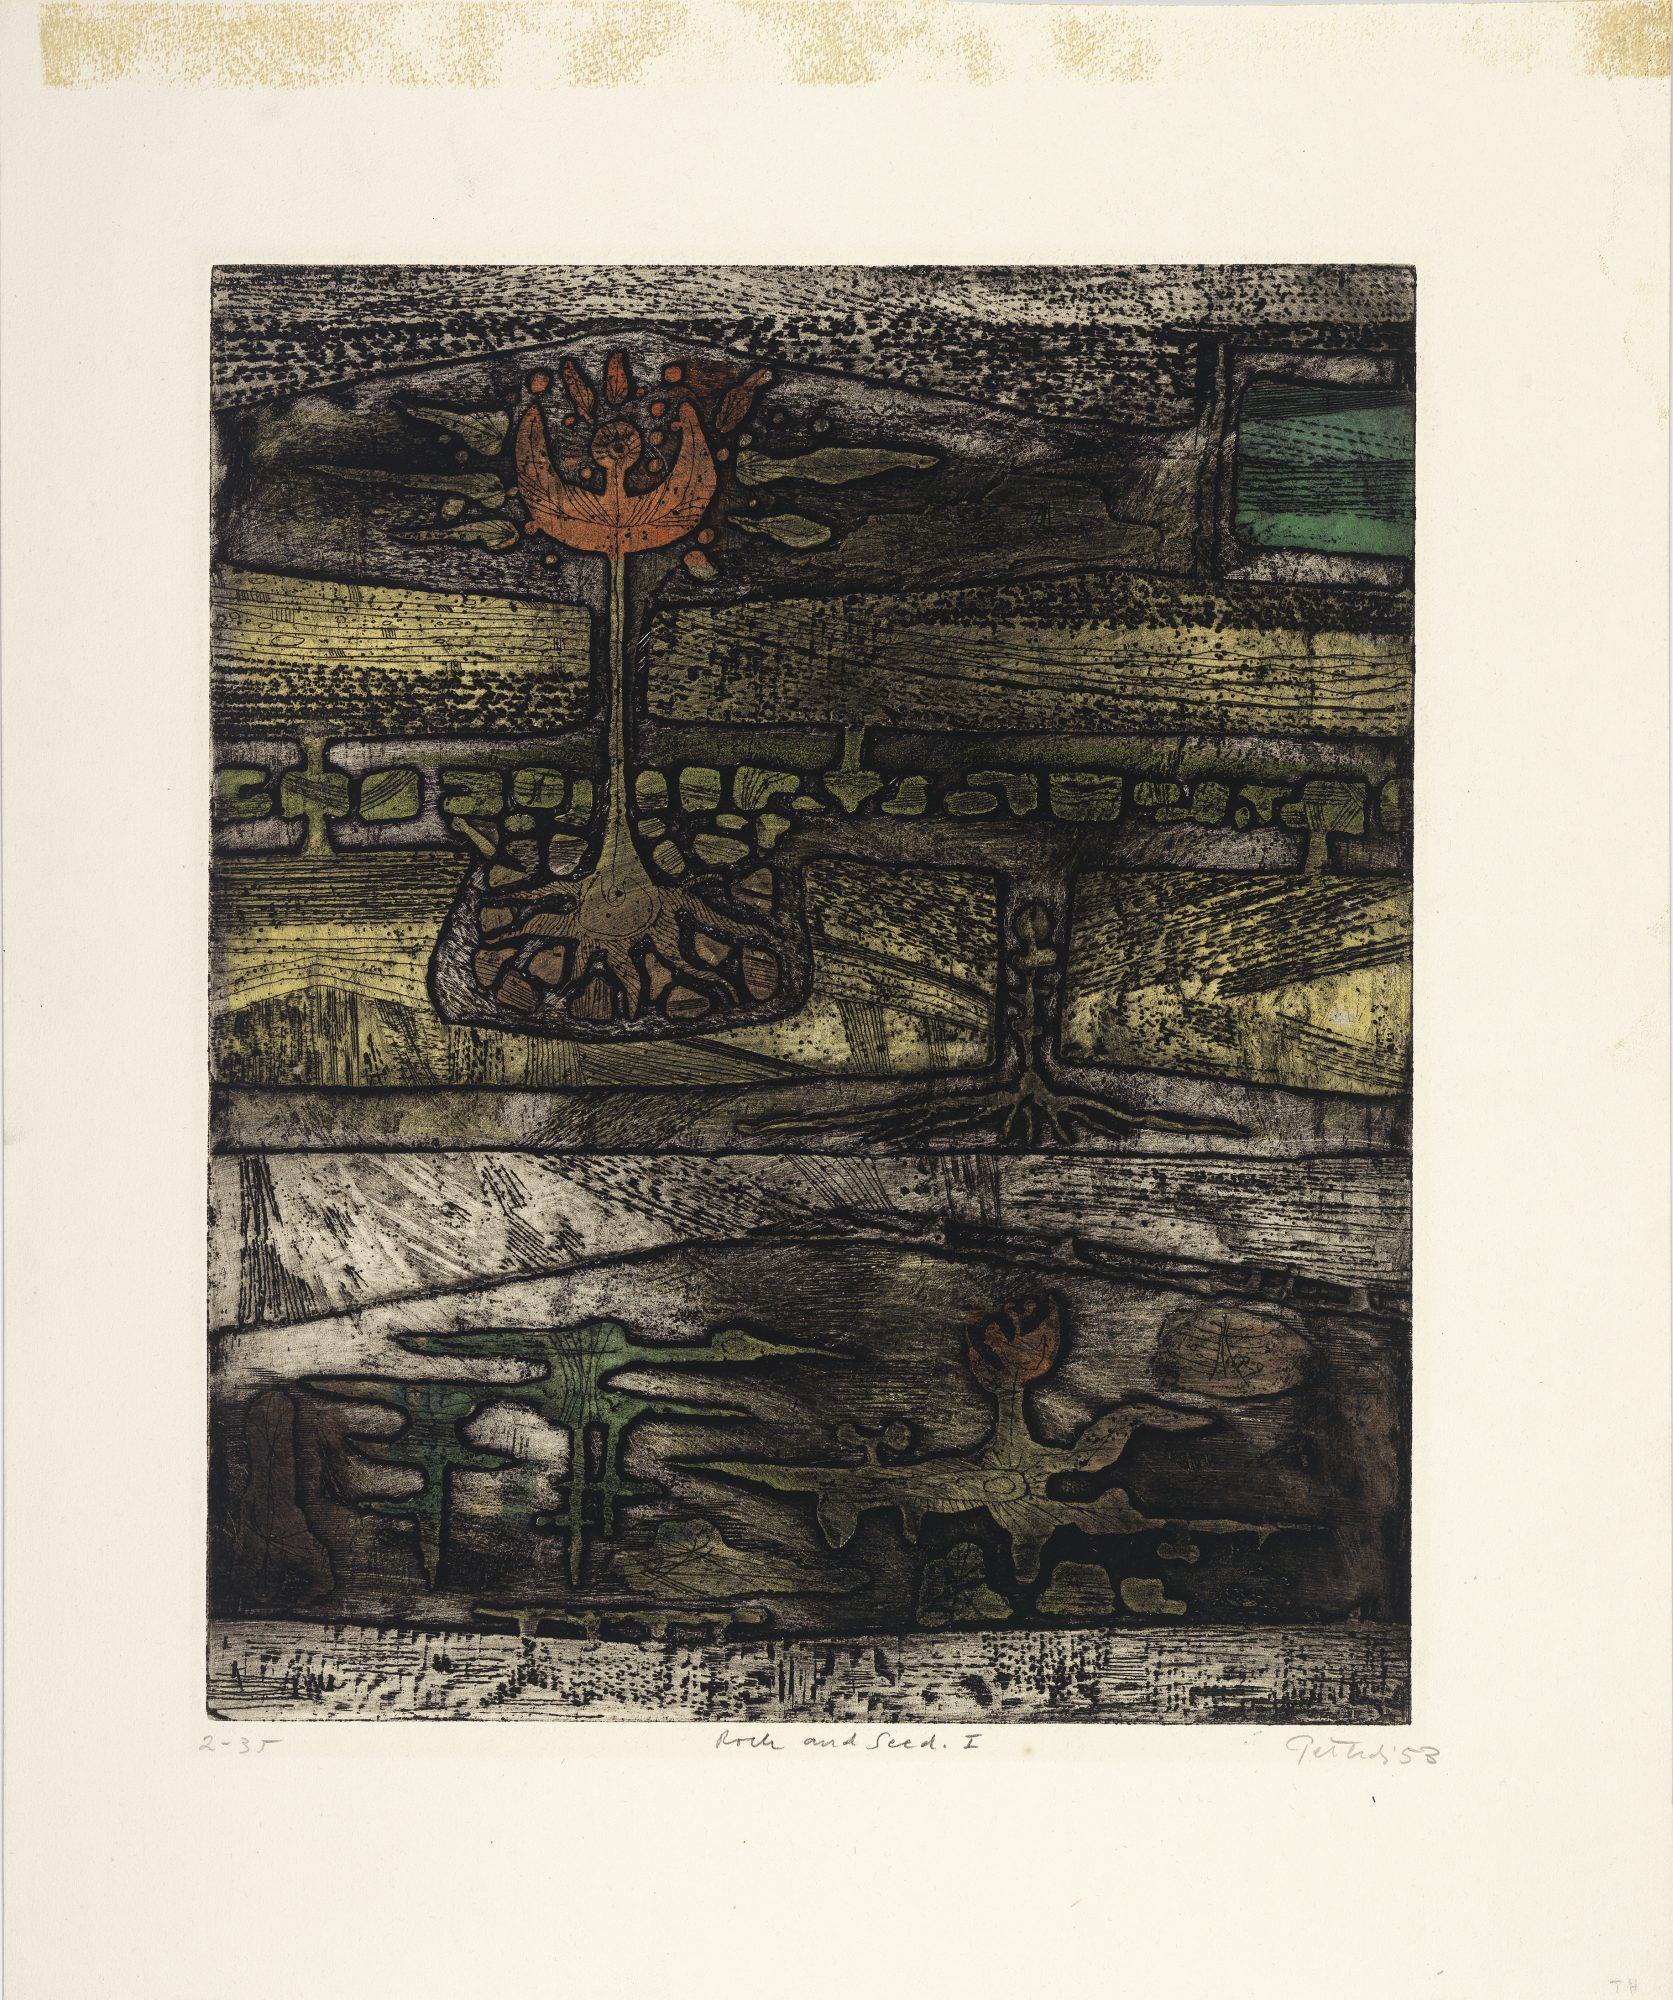 Gabor F. Peterdi (American, born Hungary, 1915–2001) Rock and Seed I, 1953. Color etching on paper. Museum purchase, IGAS fund, 61.15